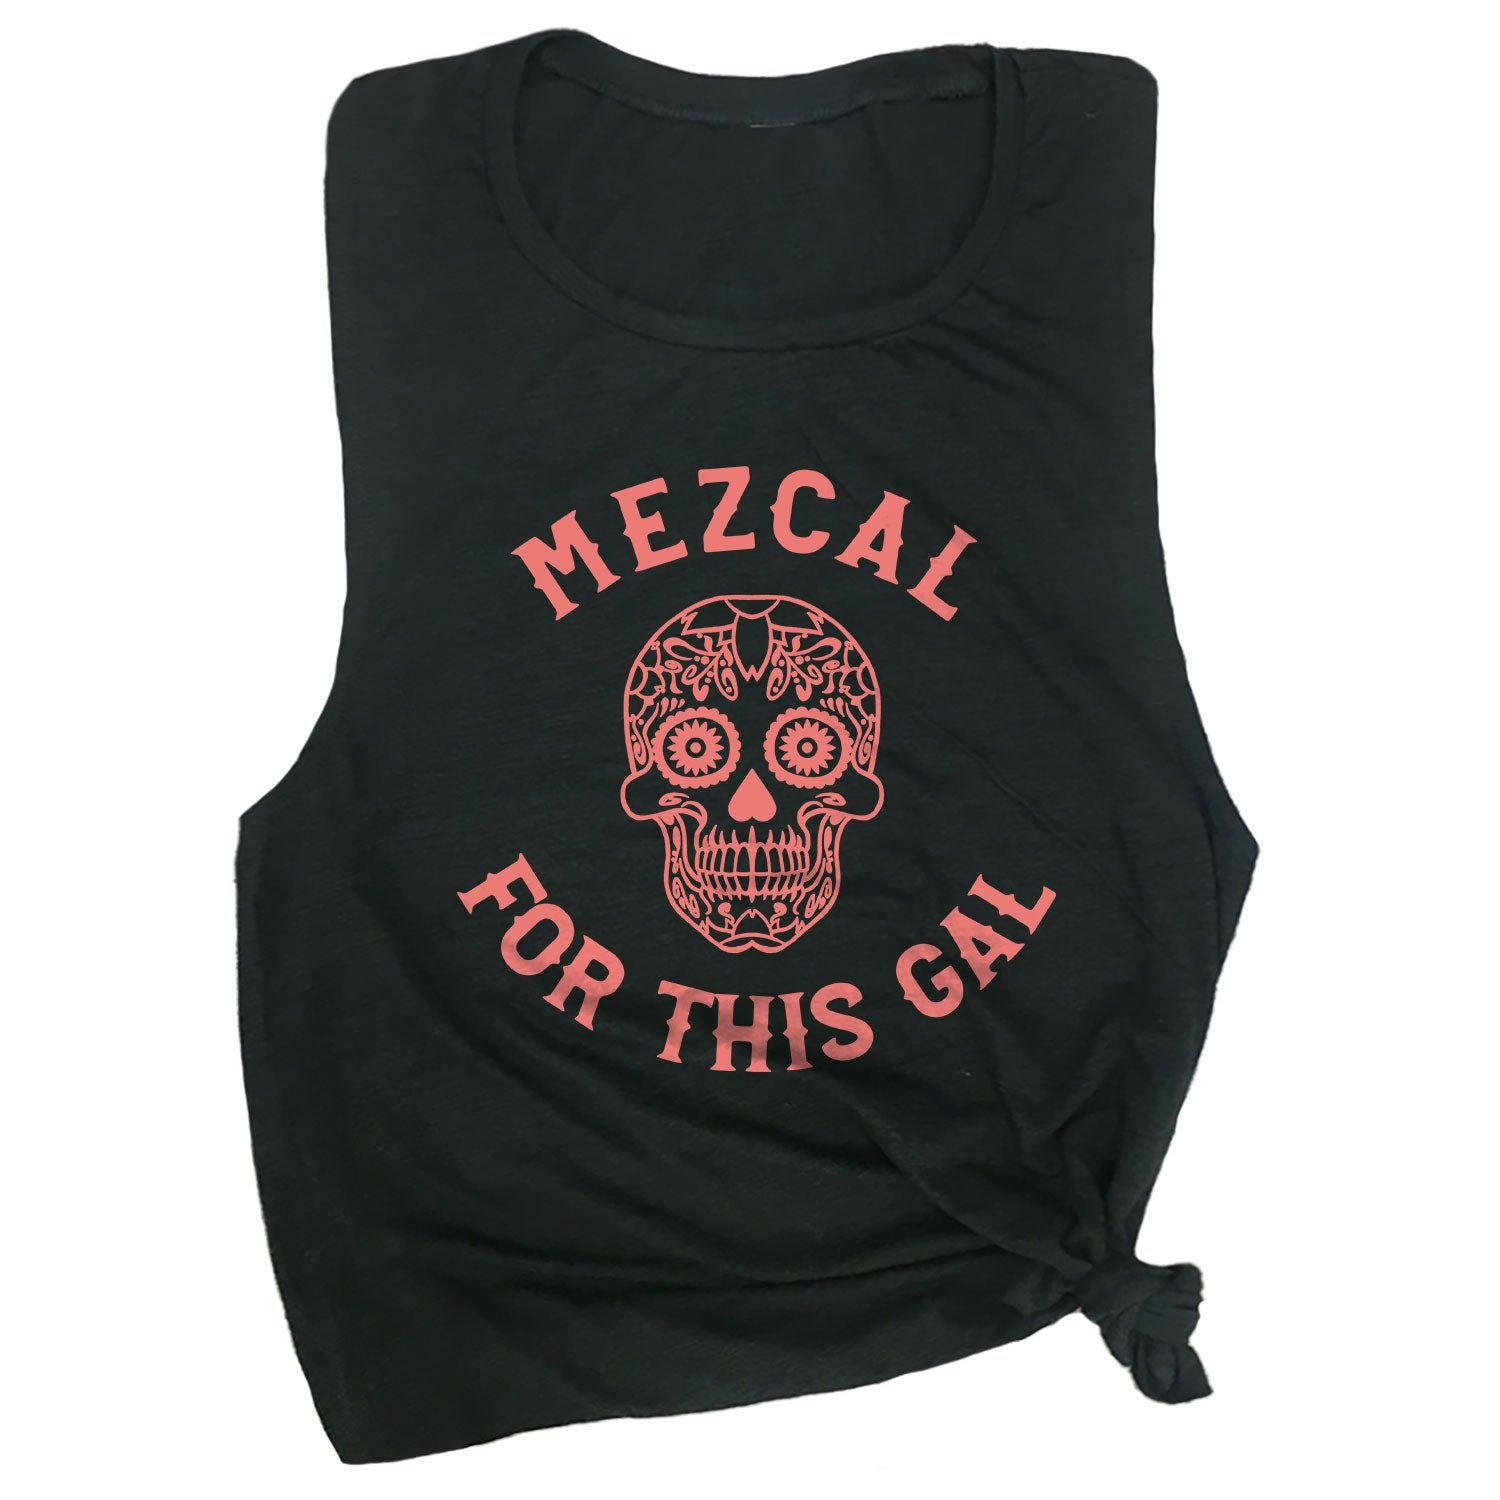 Mezcal for this Gal Muscle Tee